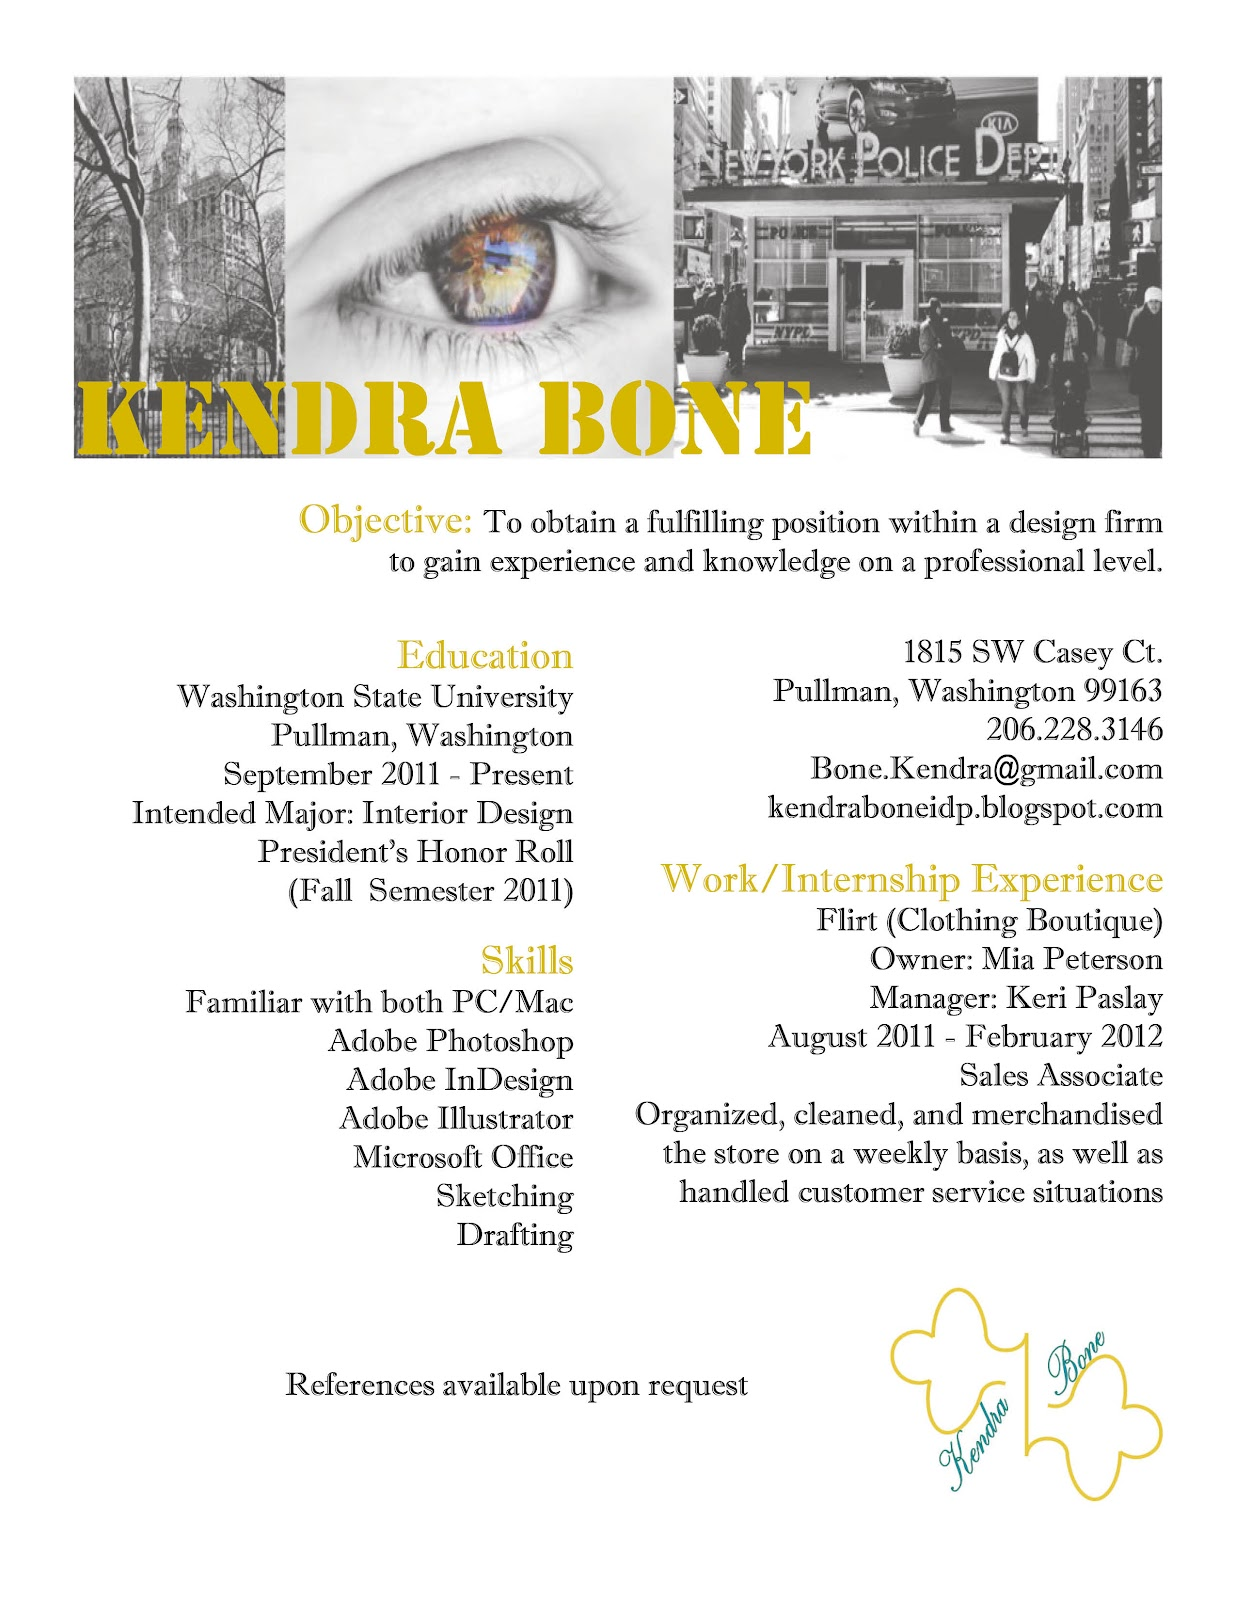 Kendra Bone's Interior Design Portfolio: Resume